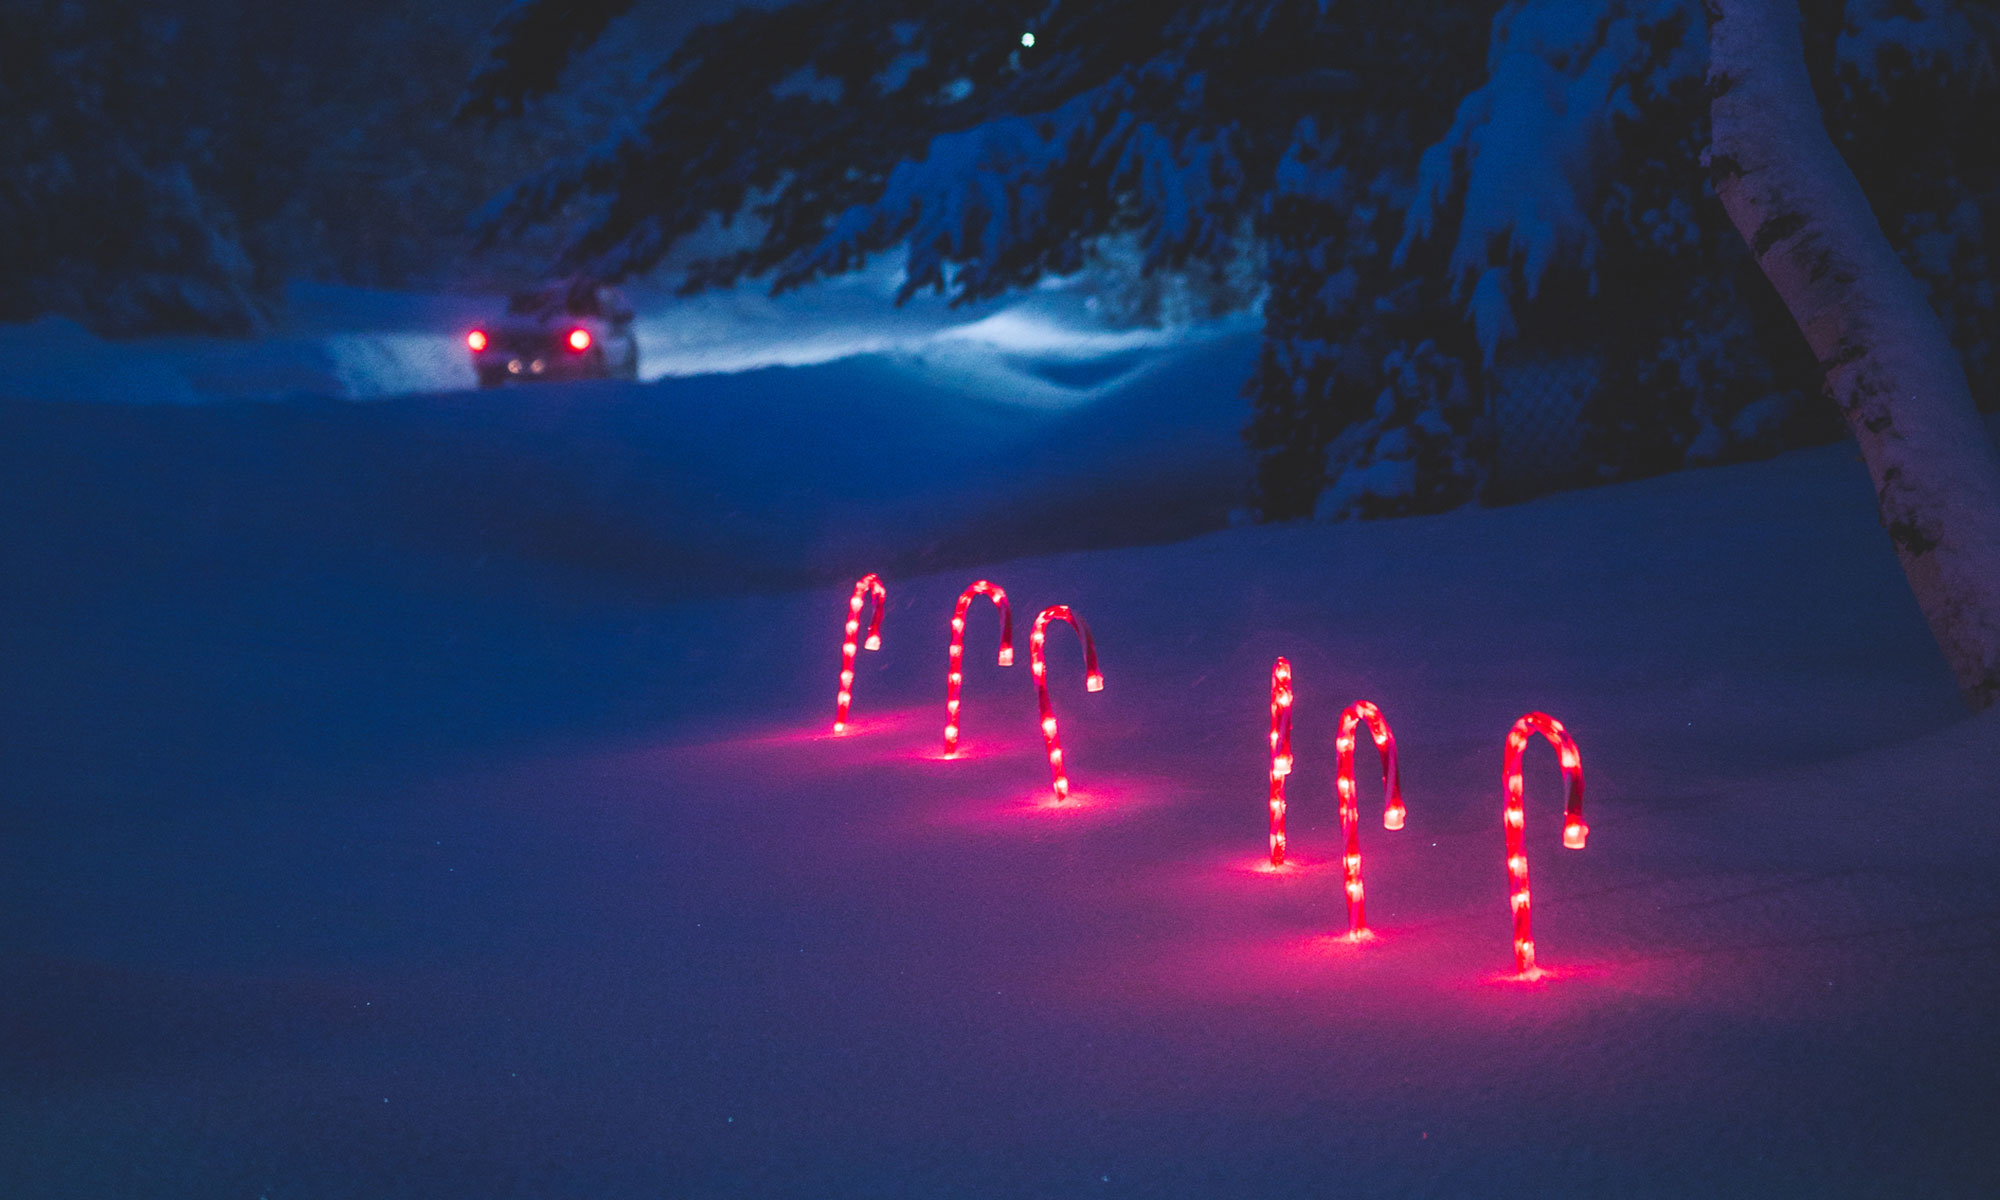 Lighted candy canes in snow